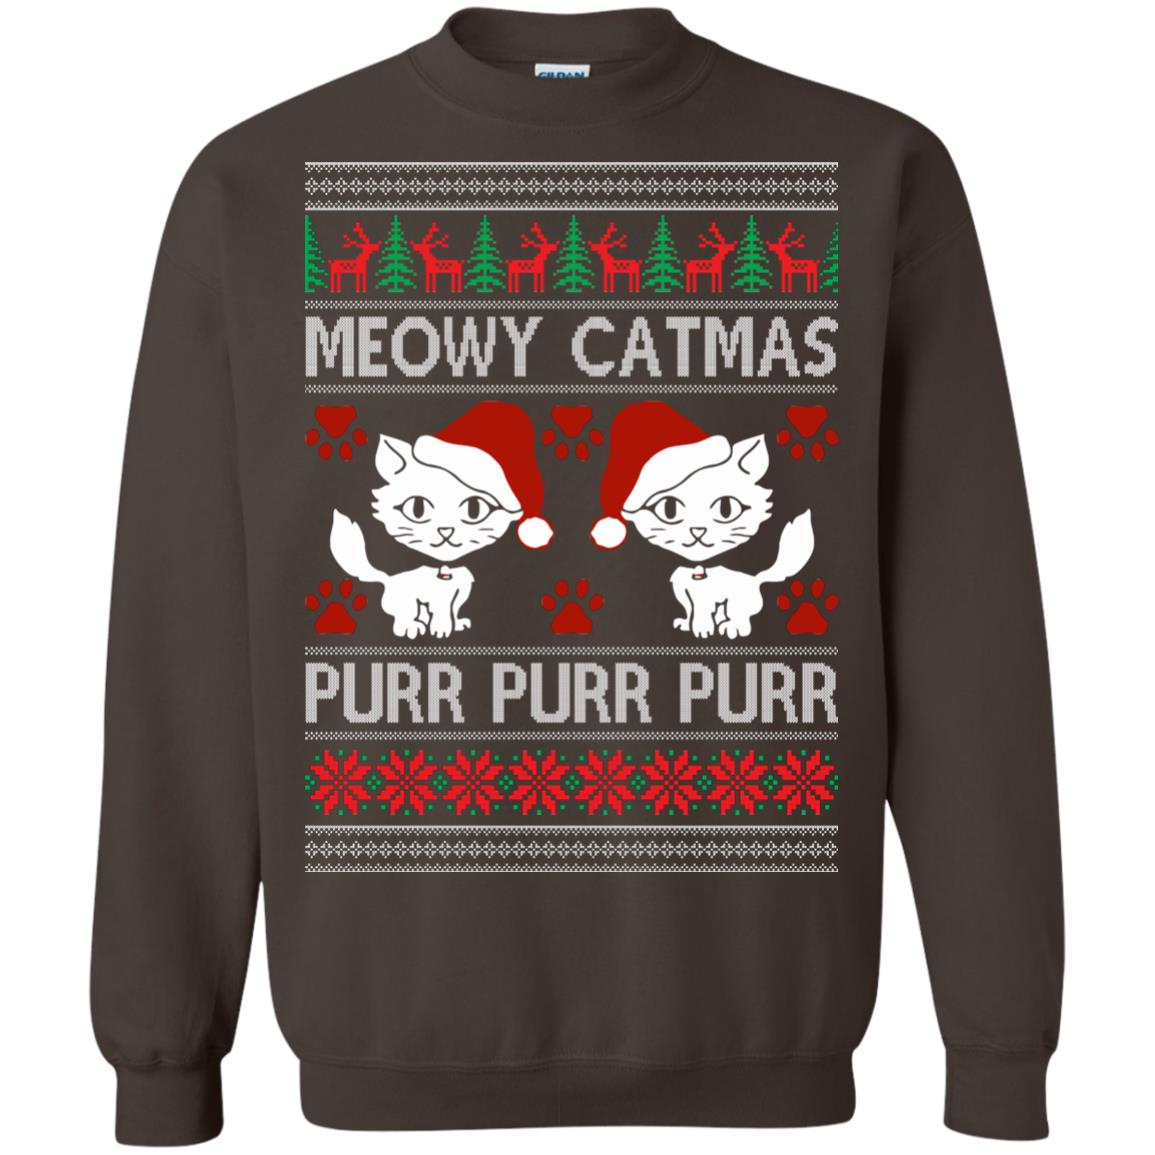 image 1170px Meowy Catmas Purr Purr Christmas Sweater, Cat Lover Sweatshirt